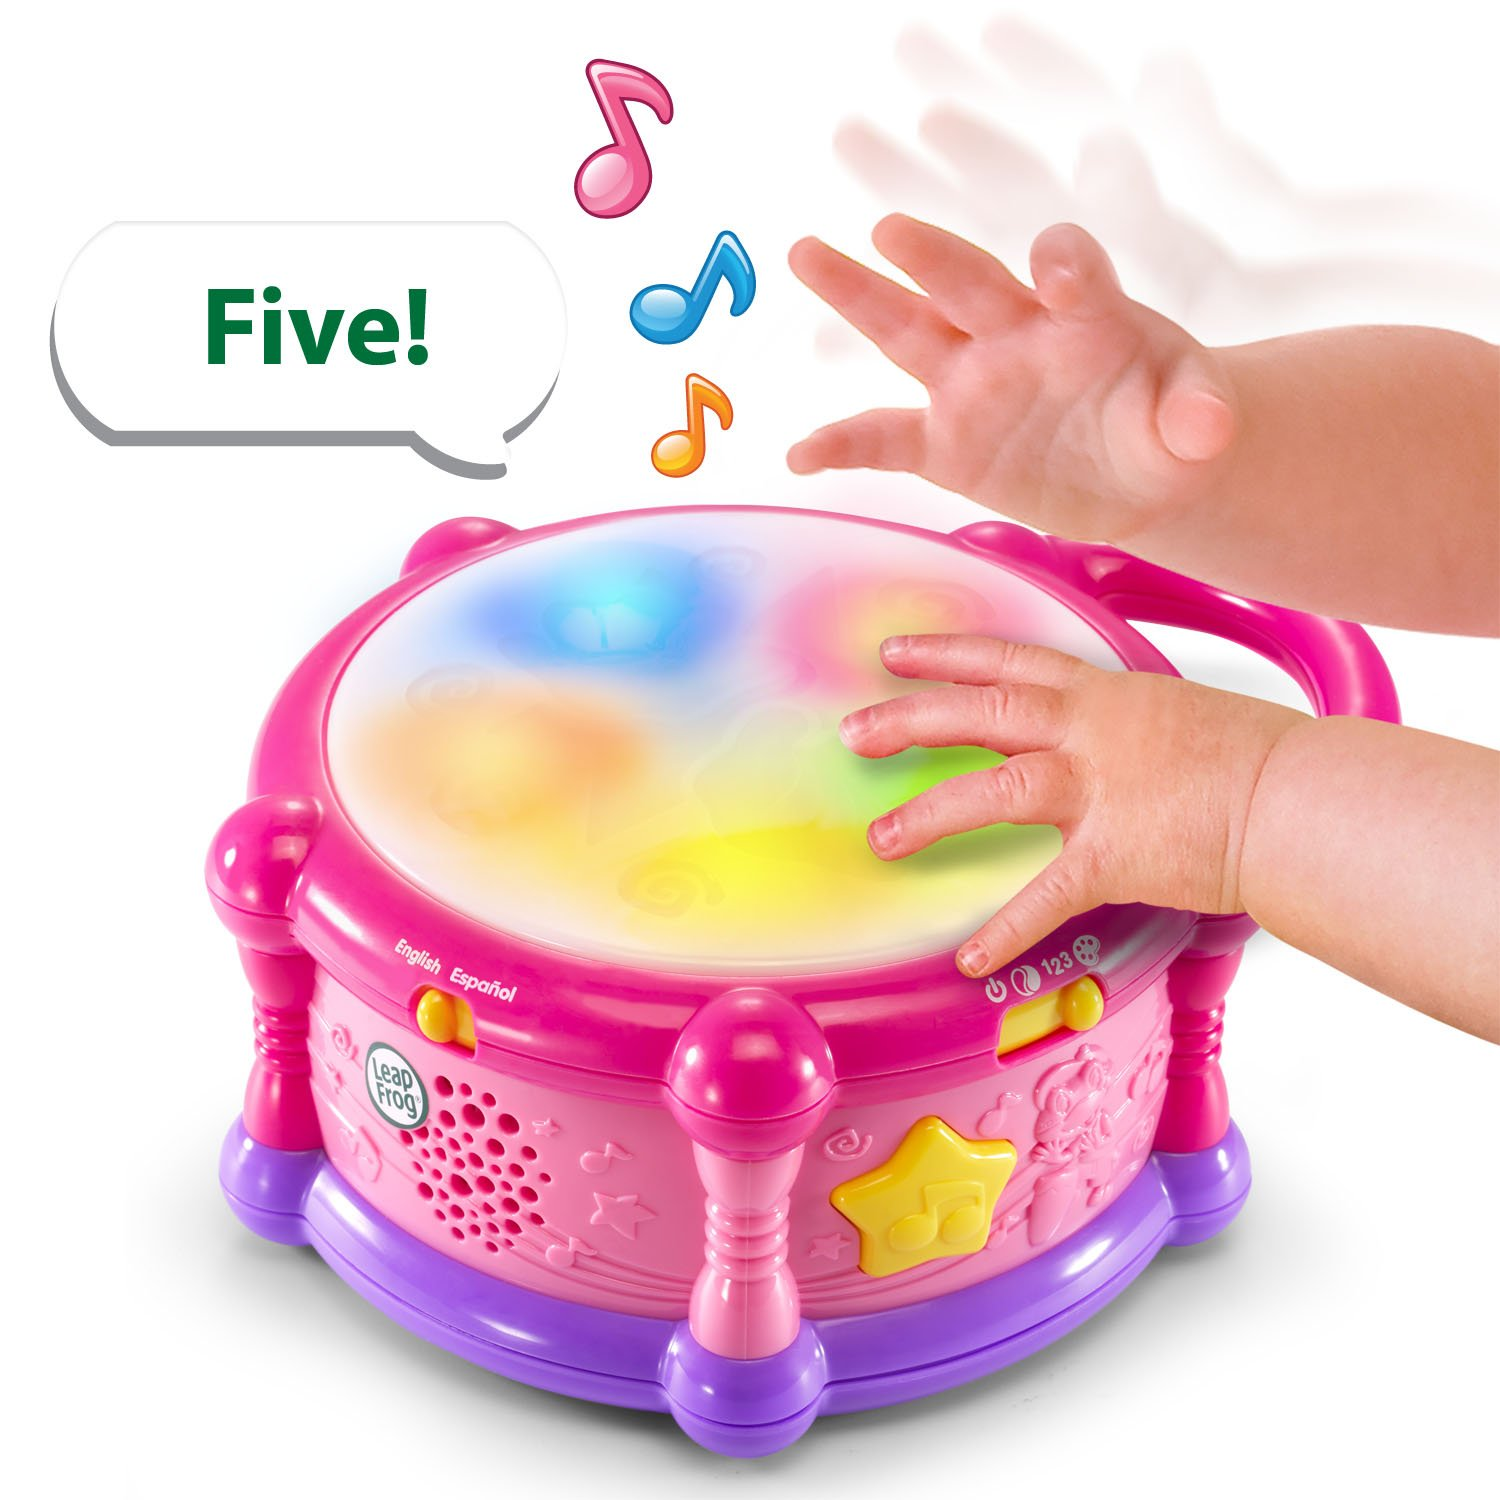 LeapFrog Learn & Groove Color Play Drum Bilingual, Pink (Amazon Exclusive) by LeapFrog